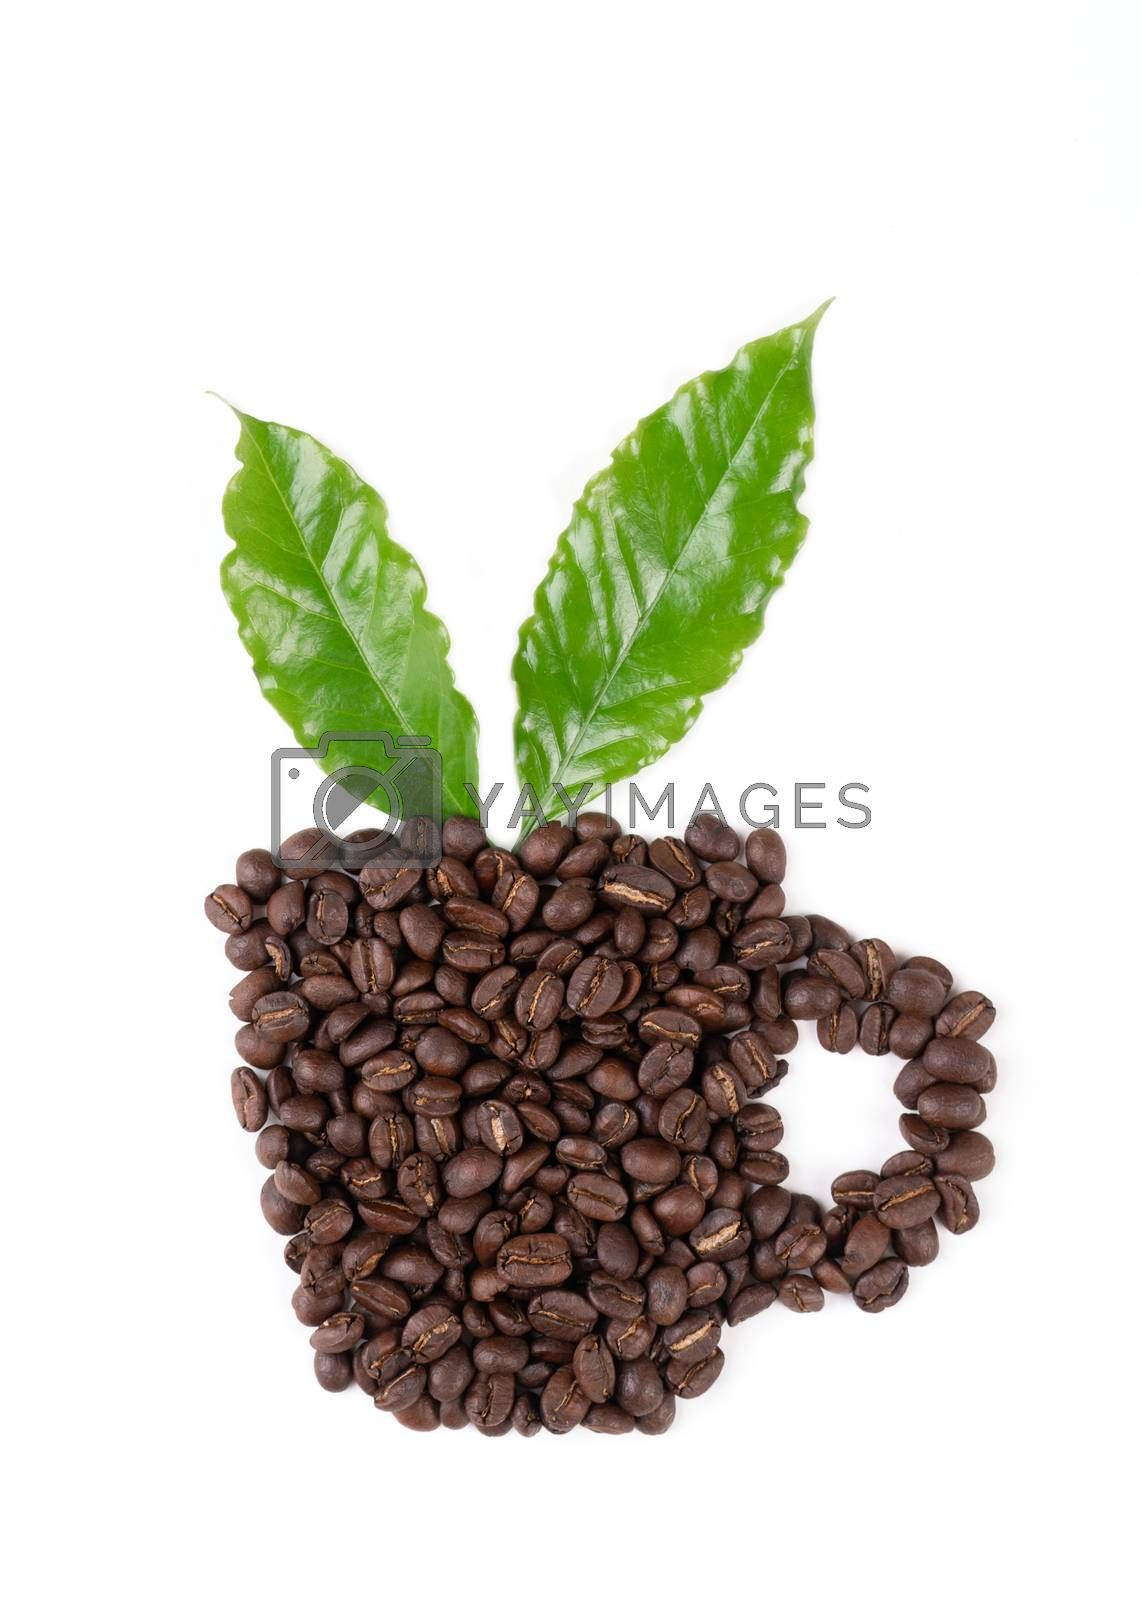 roasted coffee bean with leave on white background by anankkml